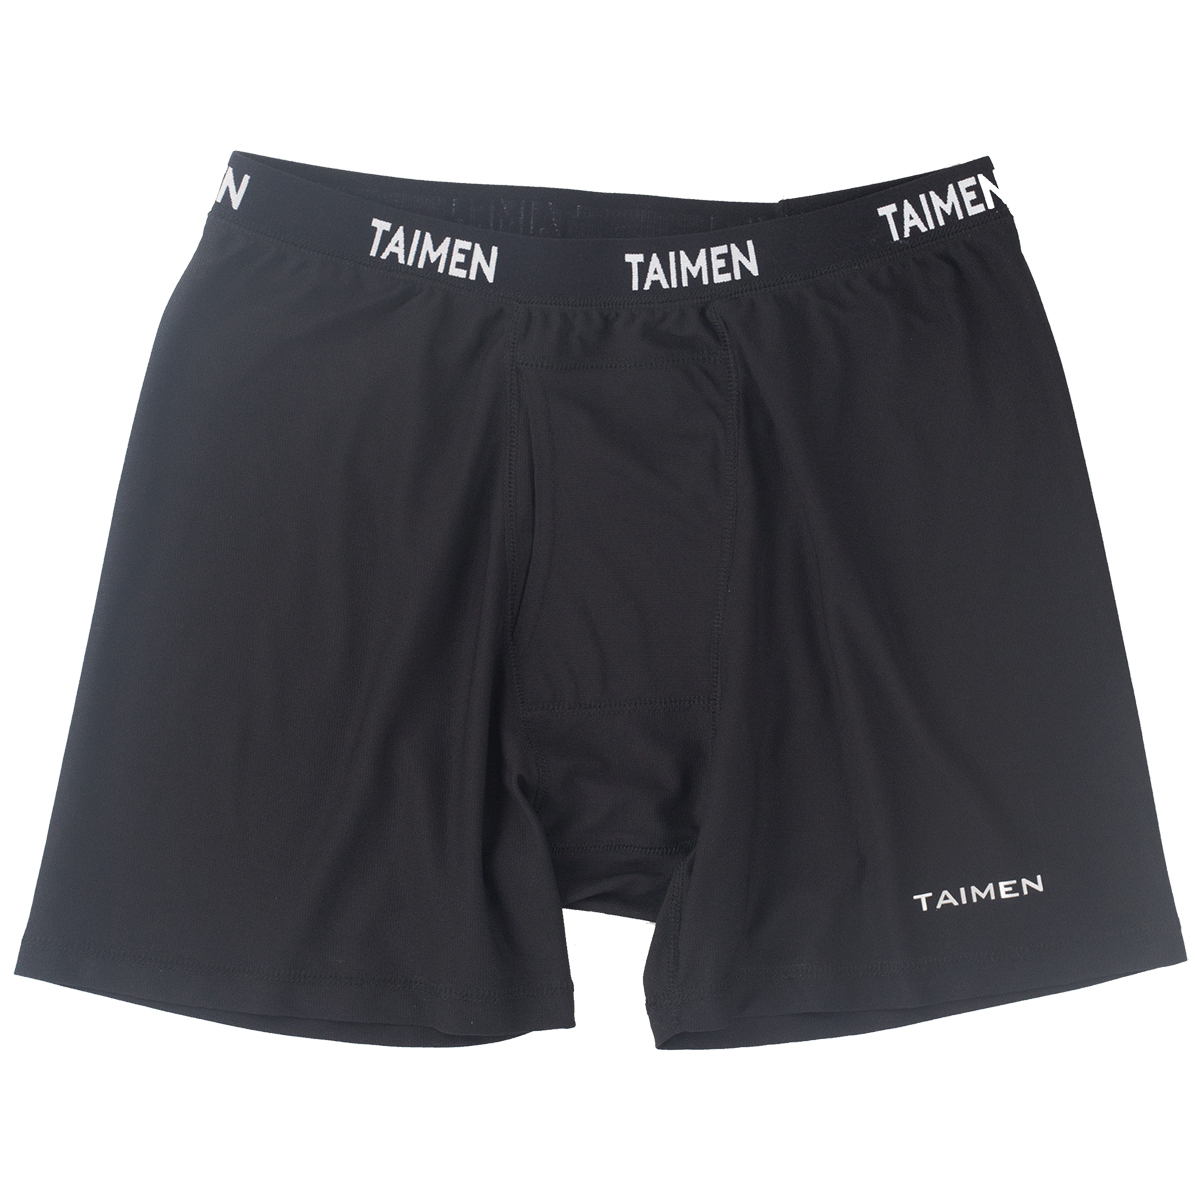 Taimen Polartec Power Dry Boxer - Black